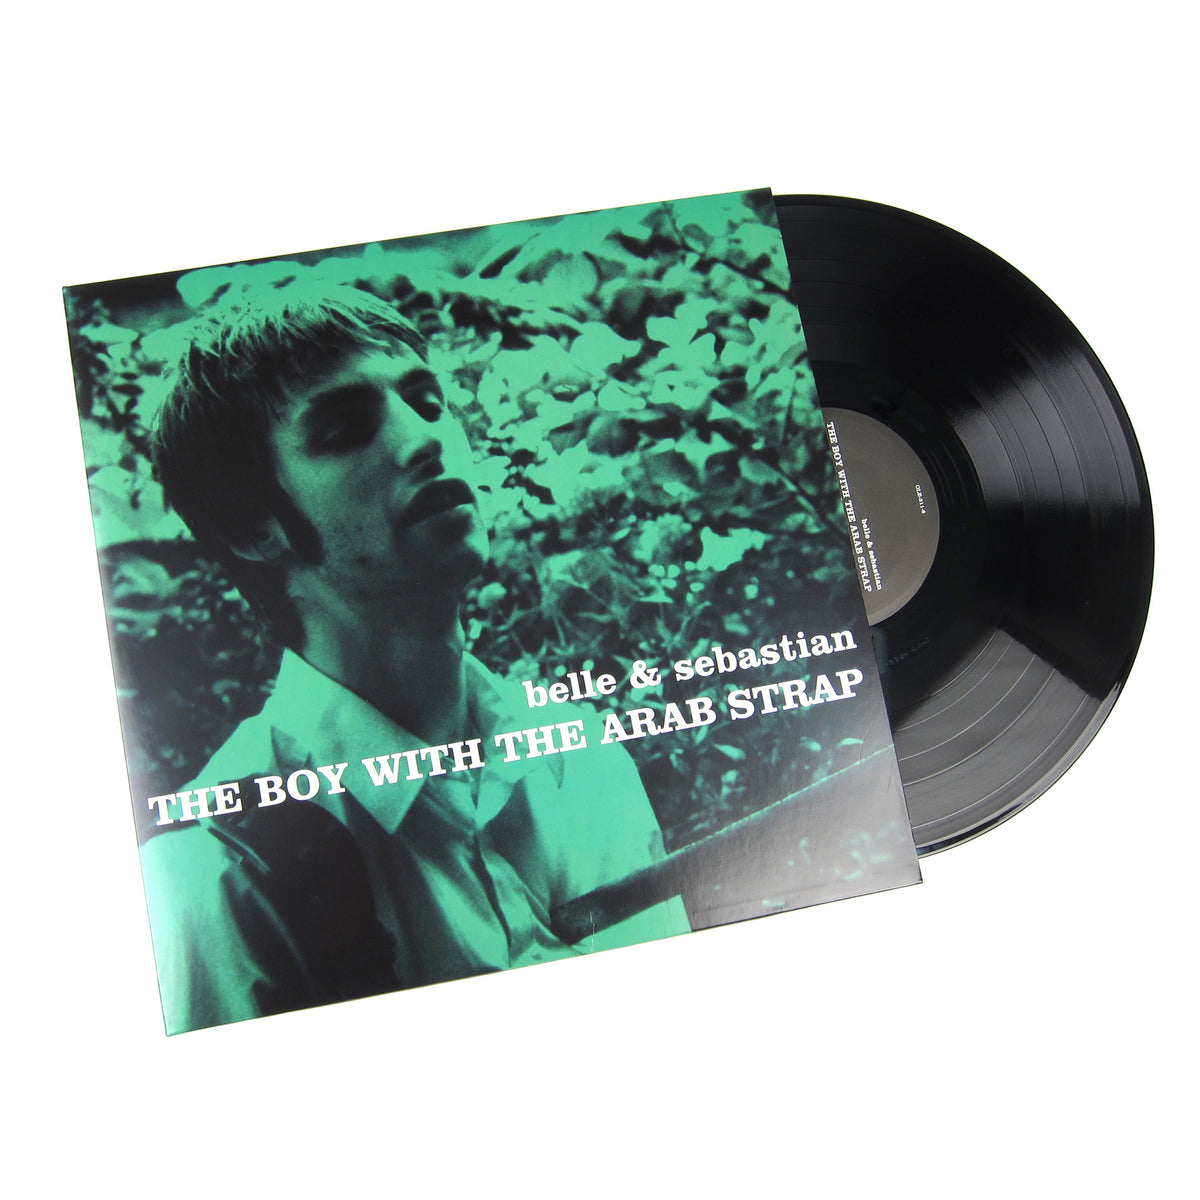 Belle & Sebastian: The Boy With The Arab Strap Vinyl LP